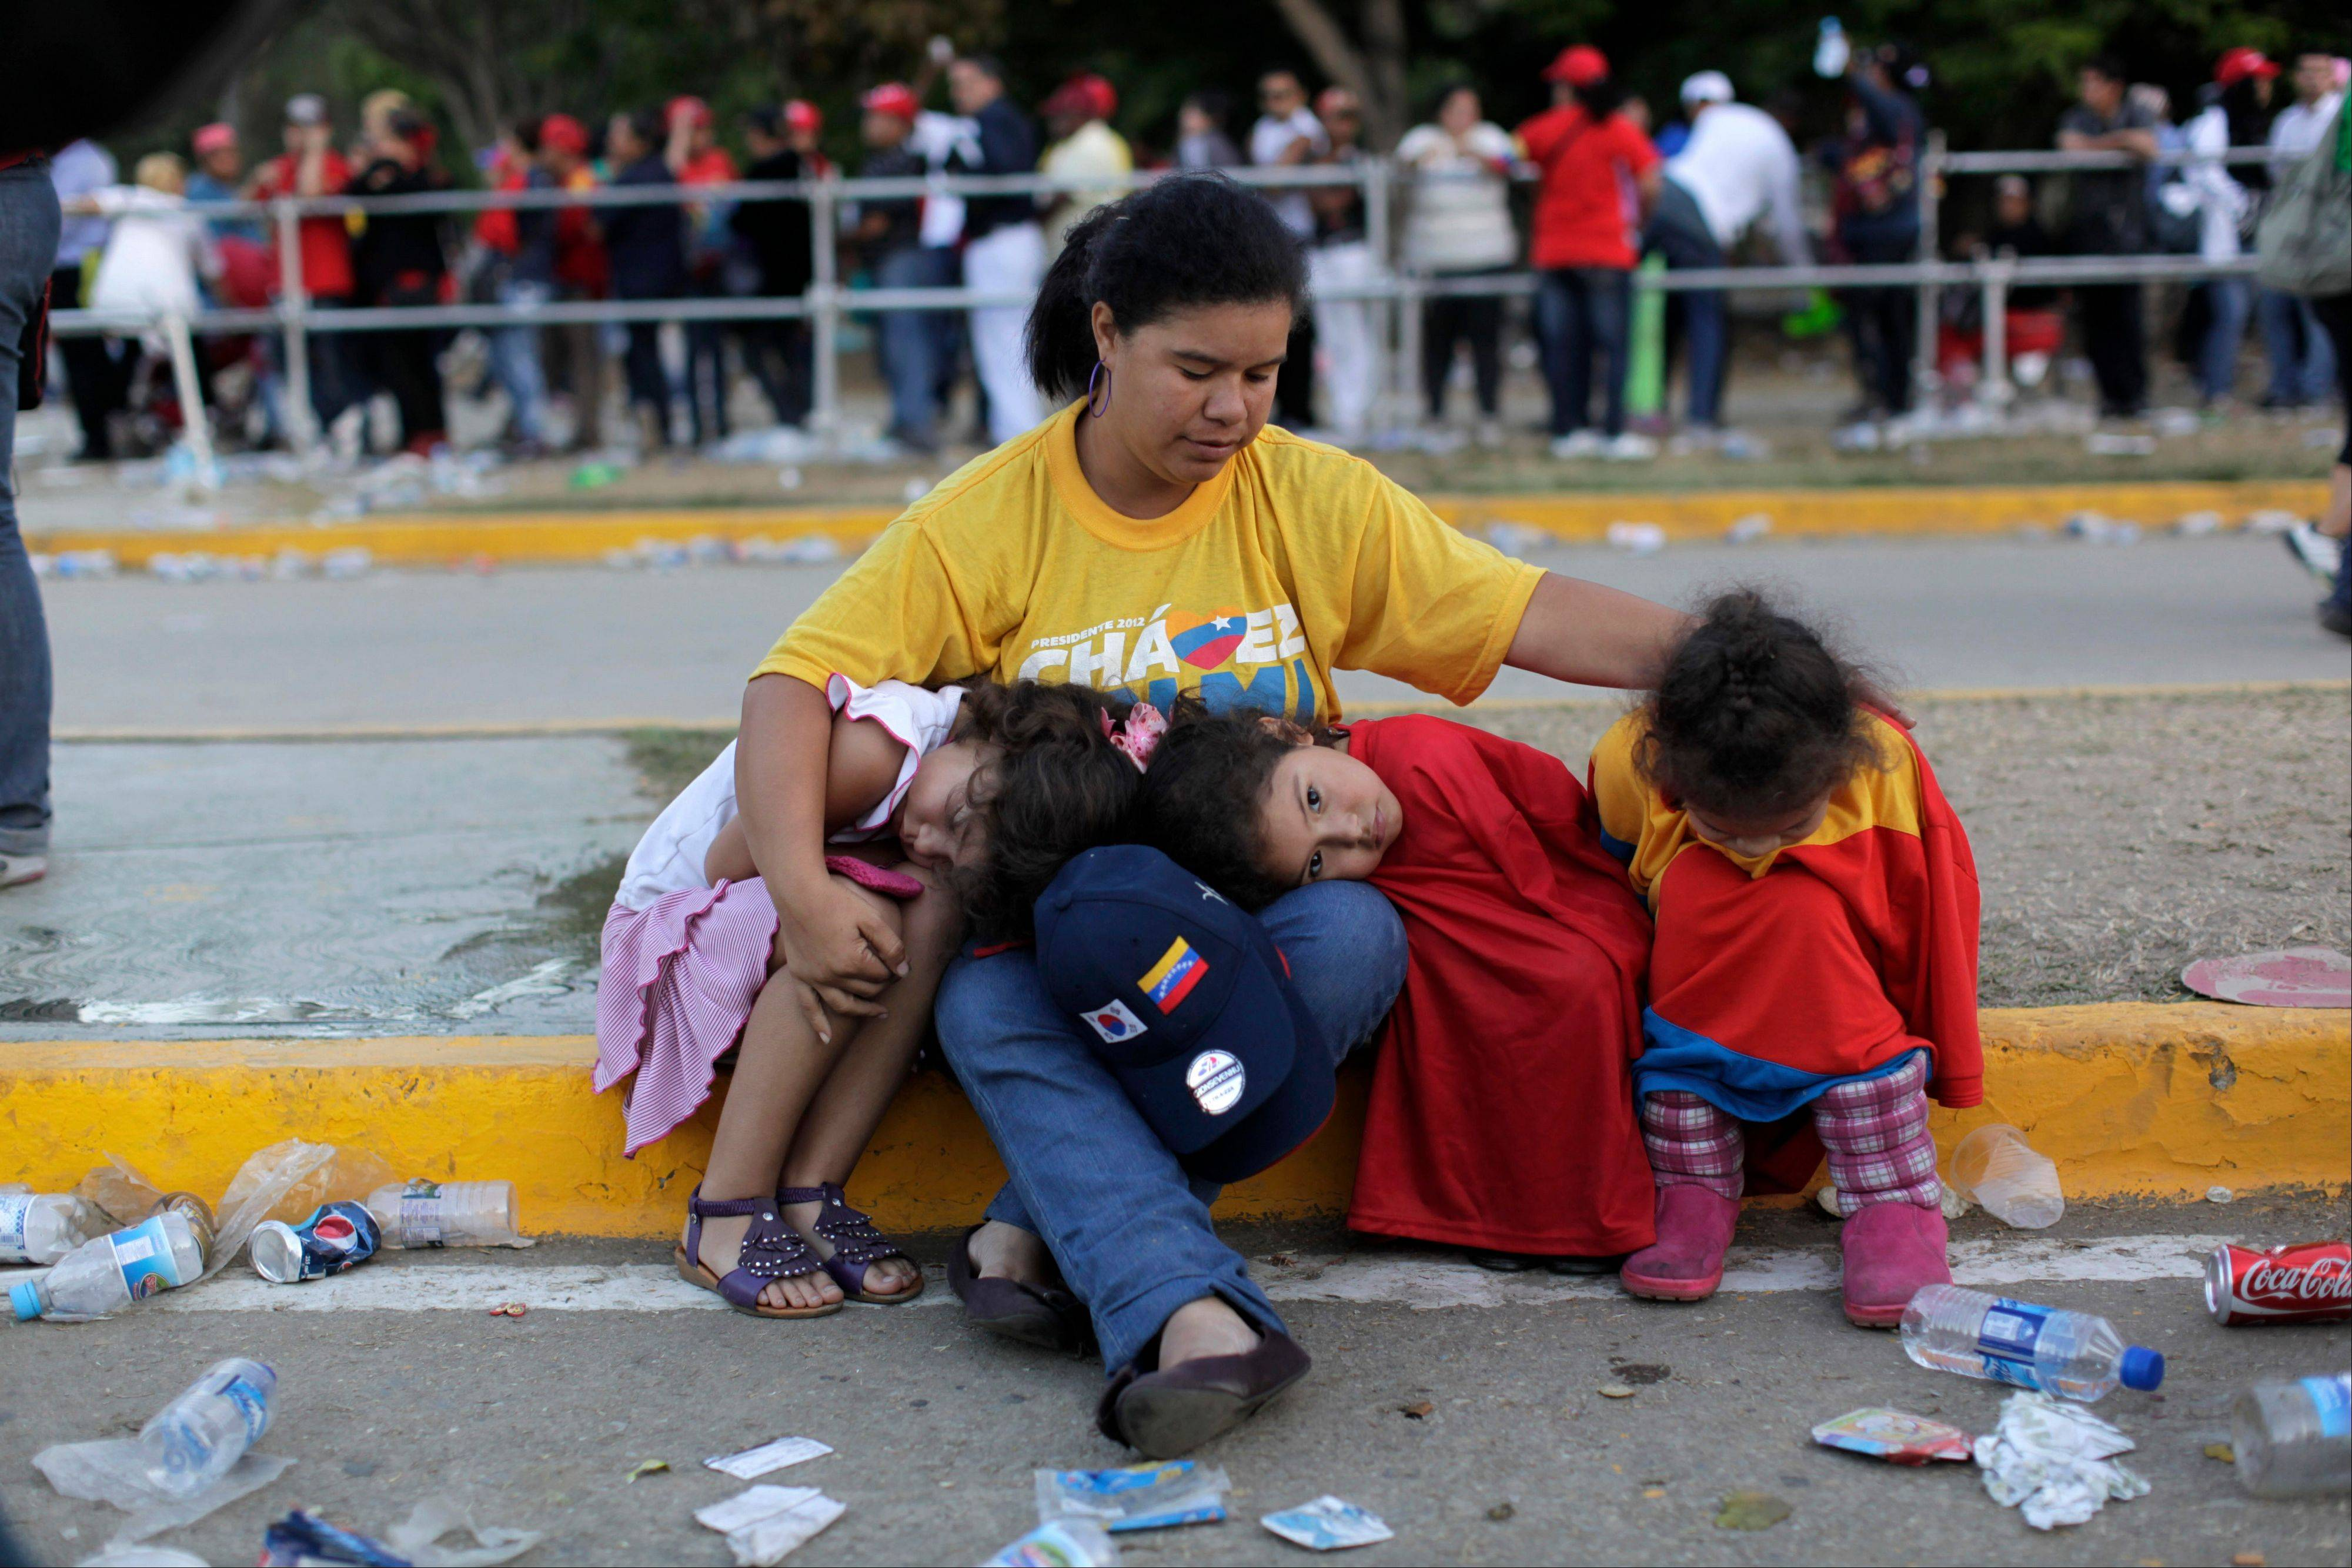 A woman sits with three girls outside the military academy where a funeral ceremony will take place for Venezuela's late President Hugo Chavez in Caracas, Venezuela, Friday, March 8, 2013.